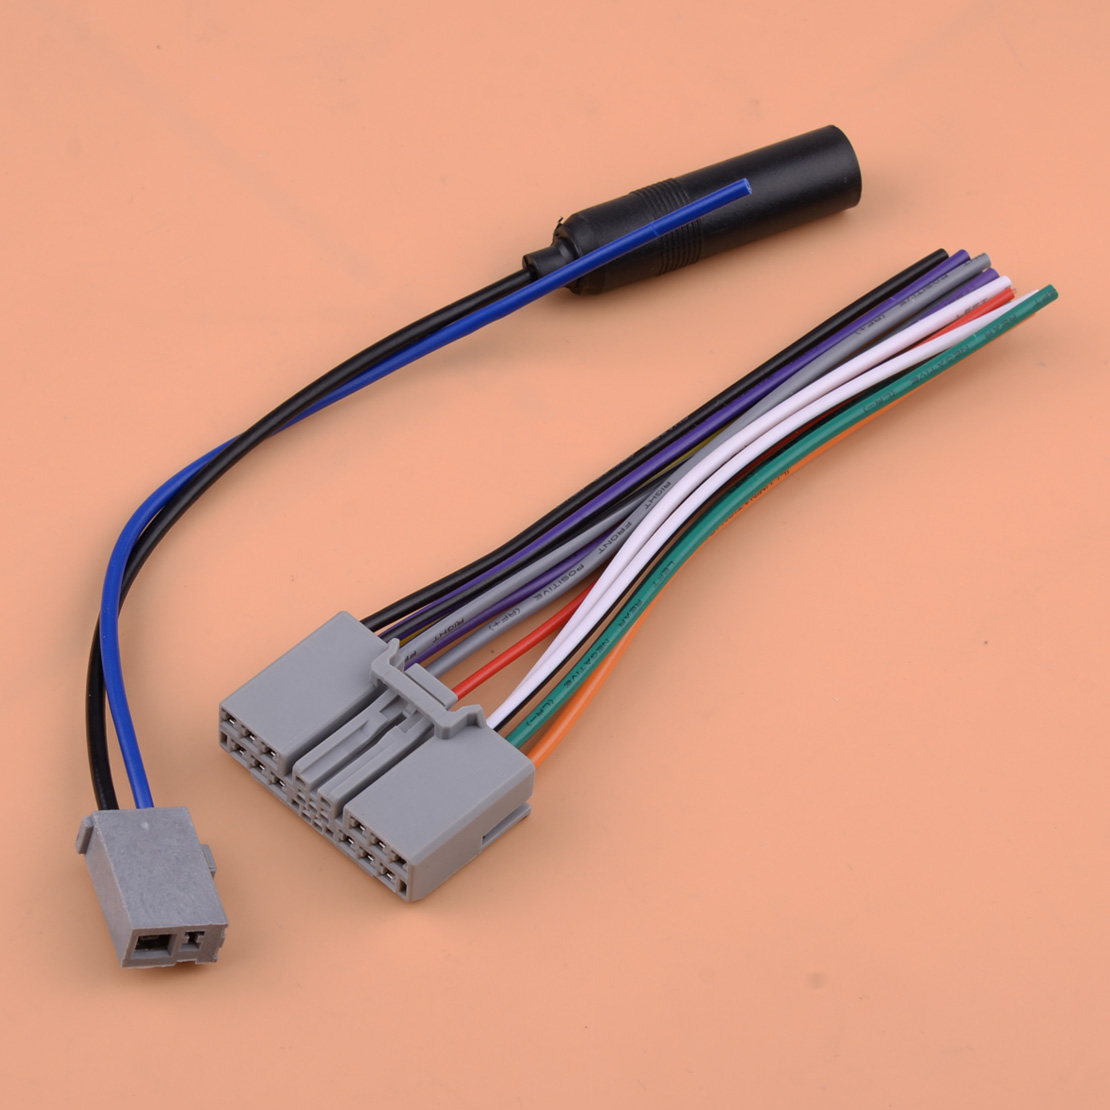 Car <font><b>Radio</b></font> Stereo Plug Wire Harness Cable Antenna <font><b>Adapter</b></font> Kit Fit for Acura MDX <font><b>Honda</b></font> Civic CRV Odyssey <font><b>Jazz</b></font> Fit image